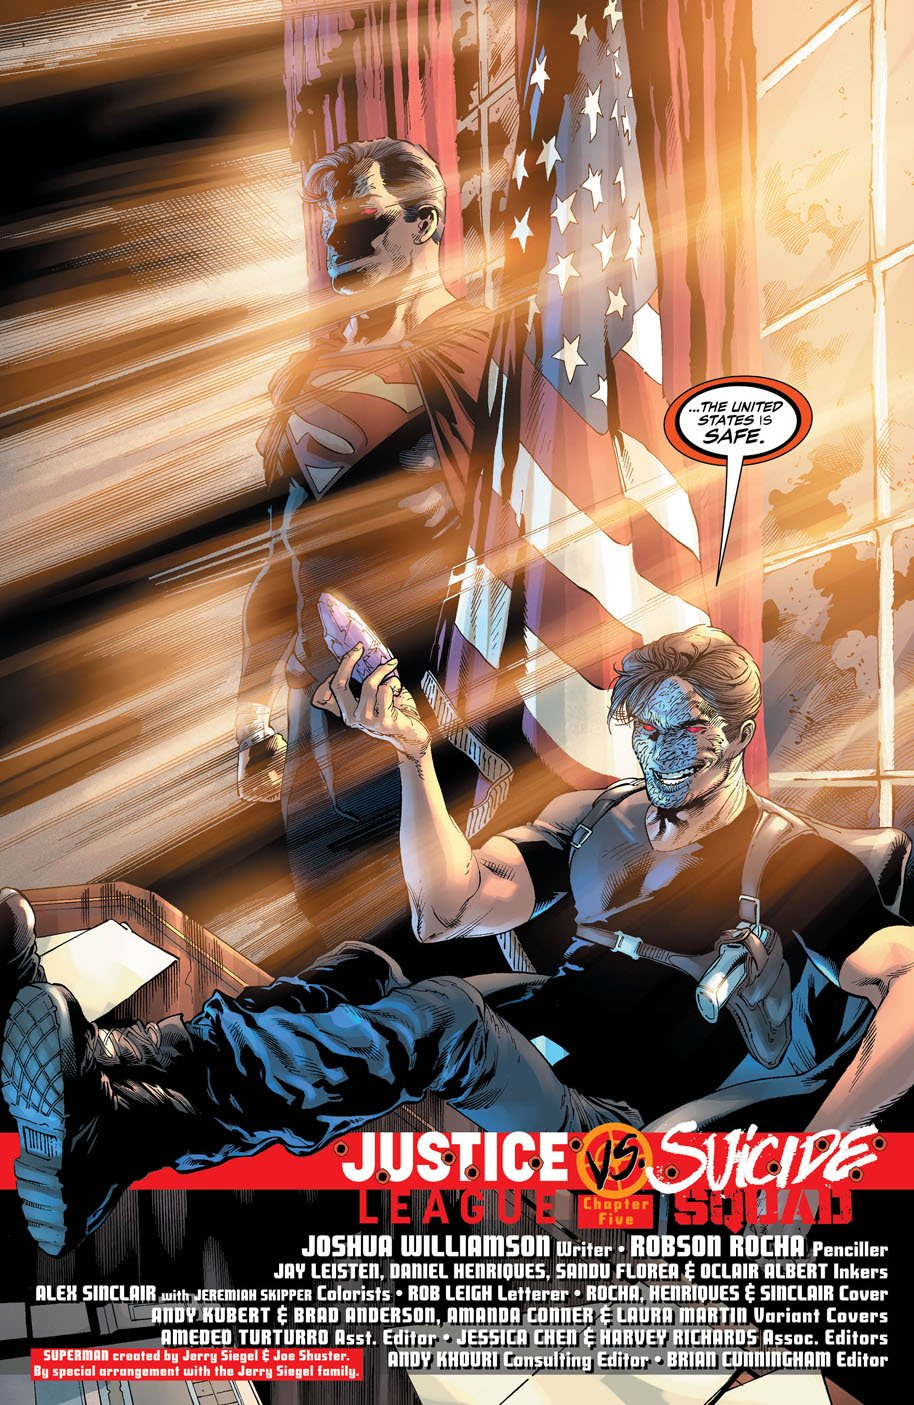 Maxwell Lord Goes To Washington In Justice League Vs. Suicide Squad #5